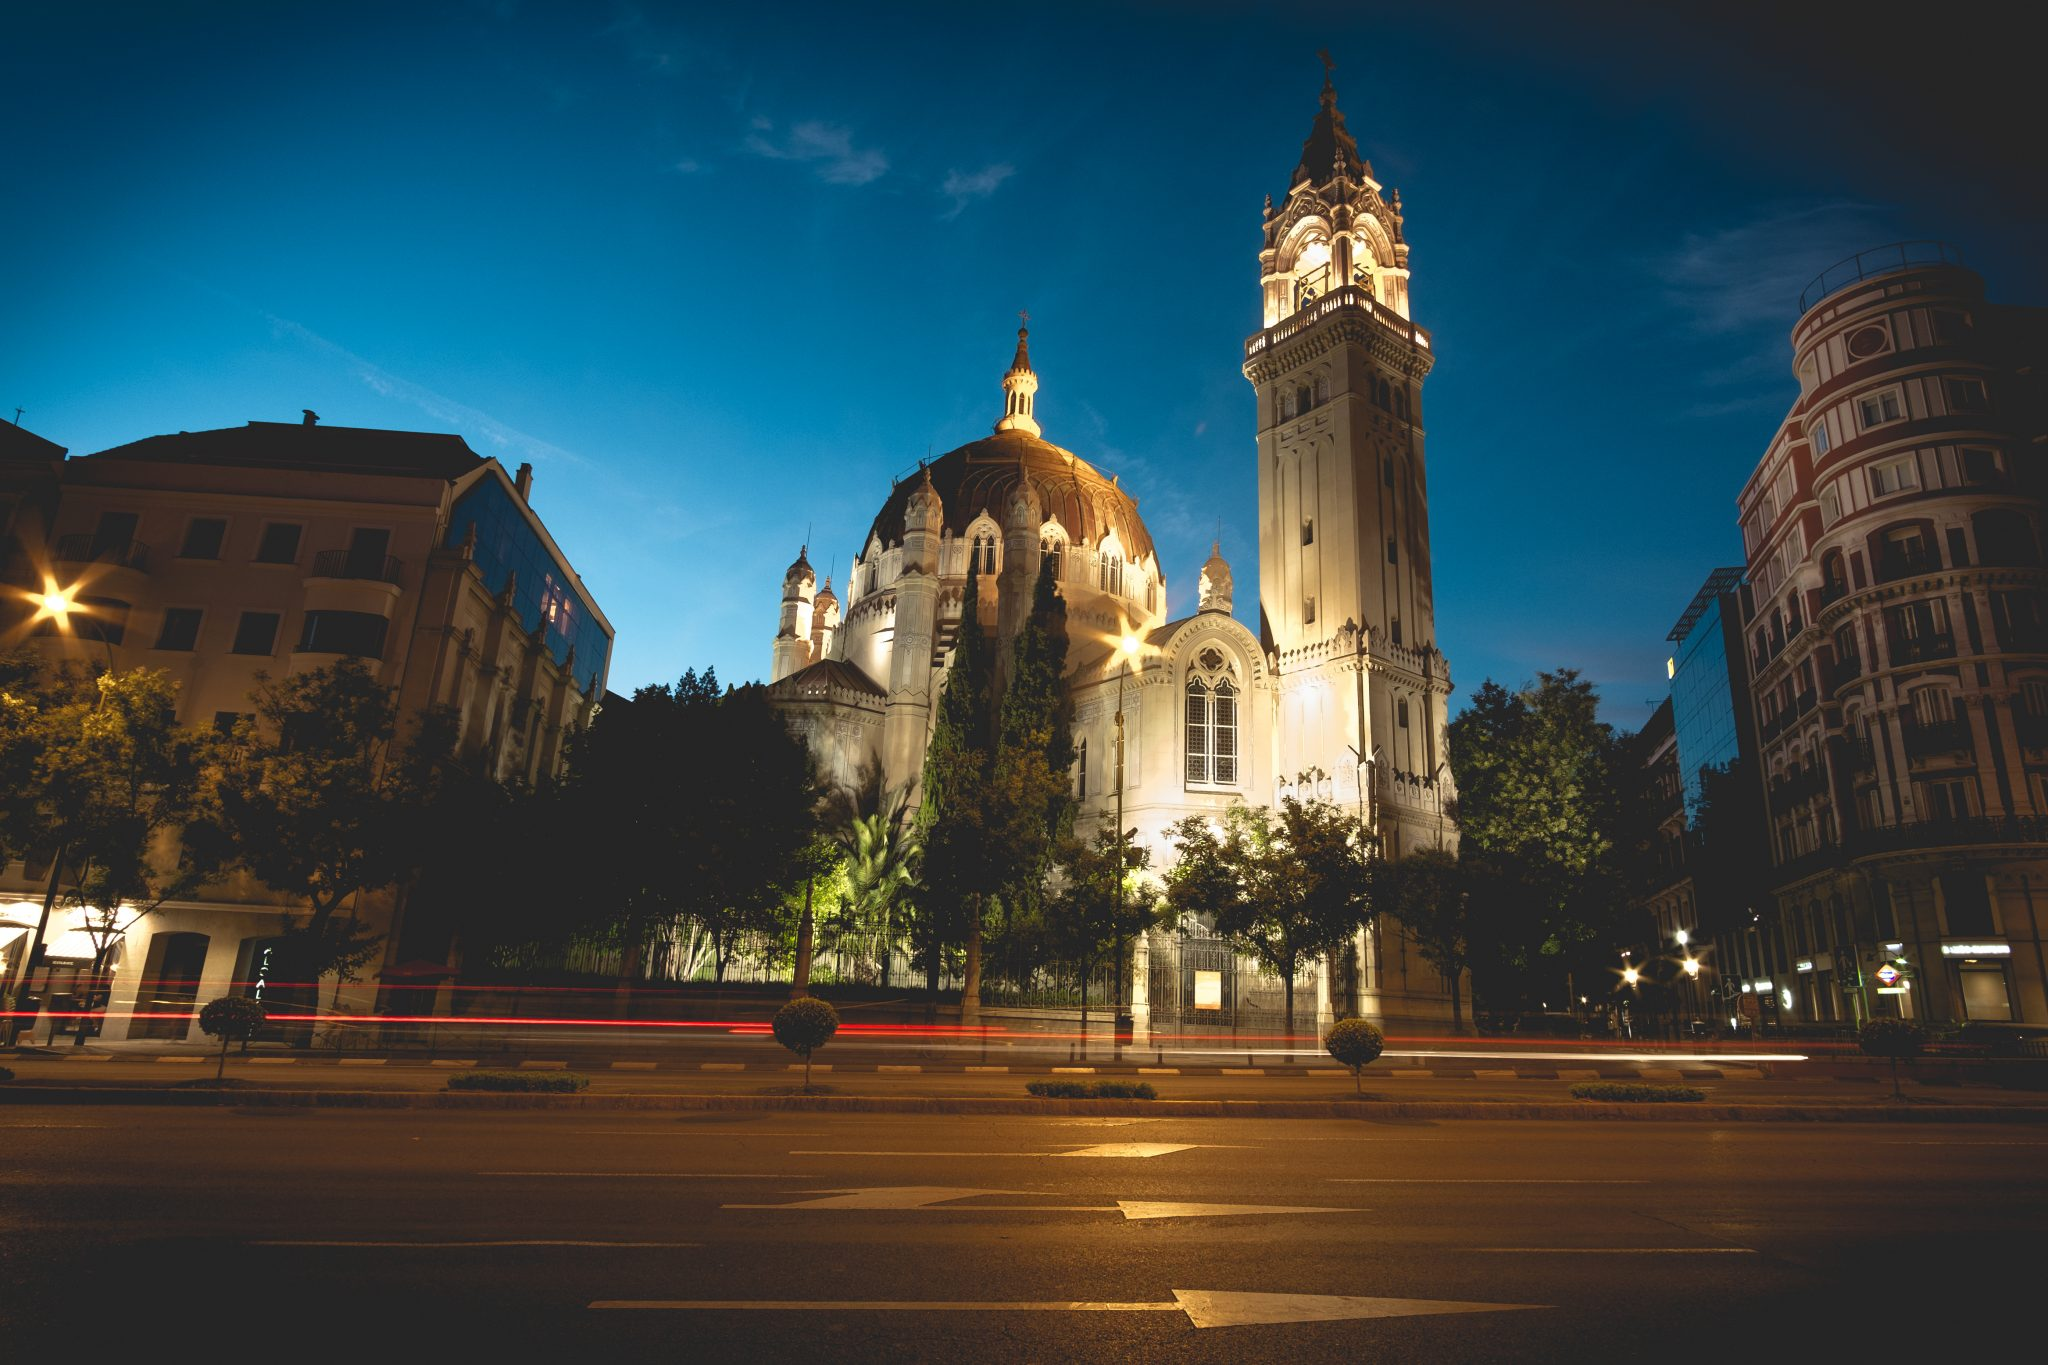 Church at night in Madrid Long exposure shot photo by Jo Kassis